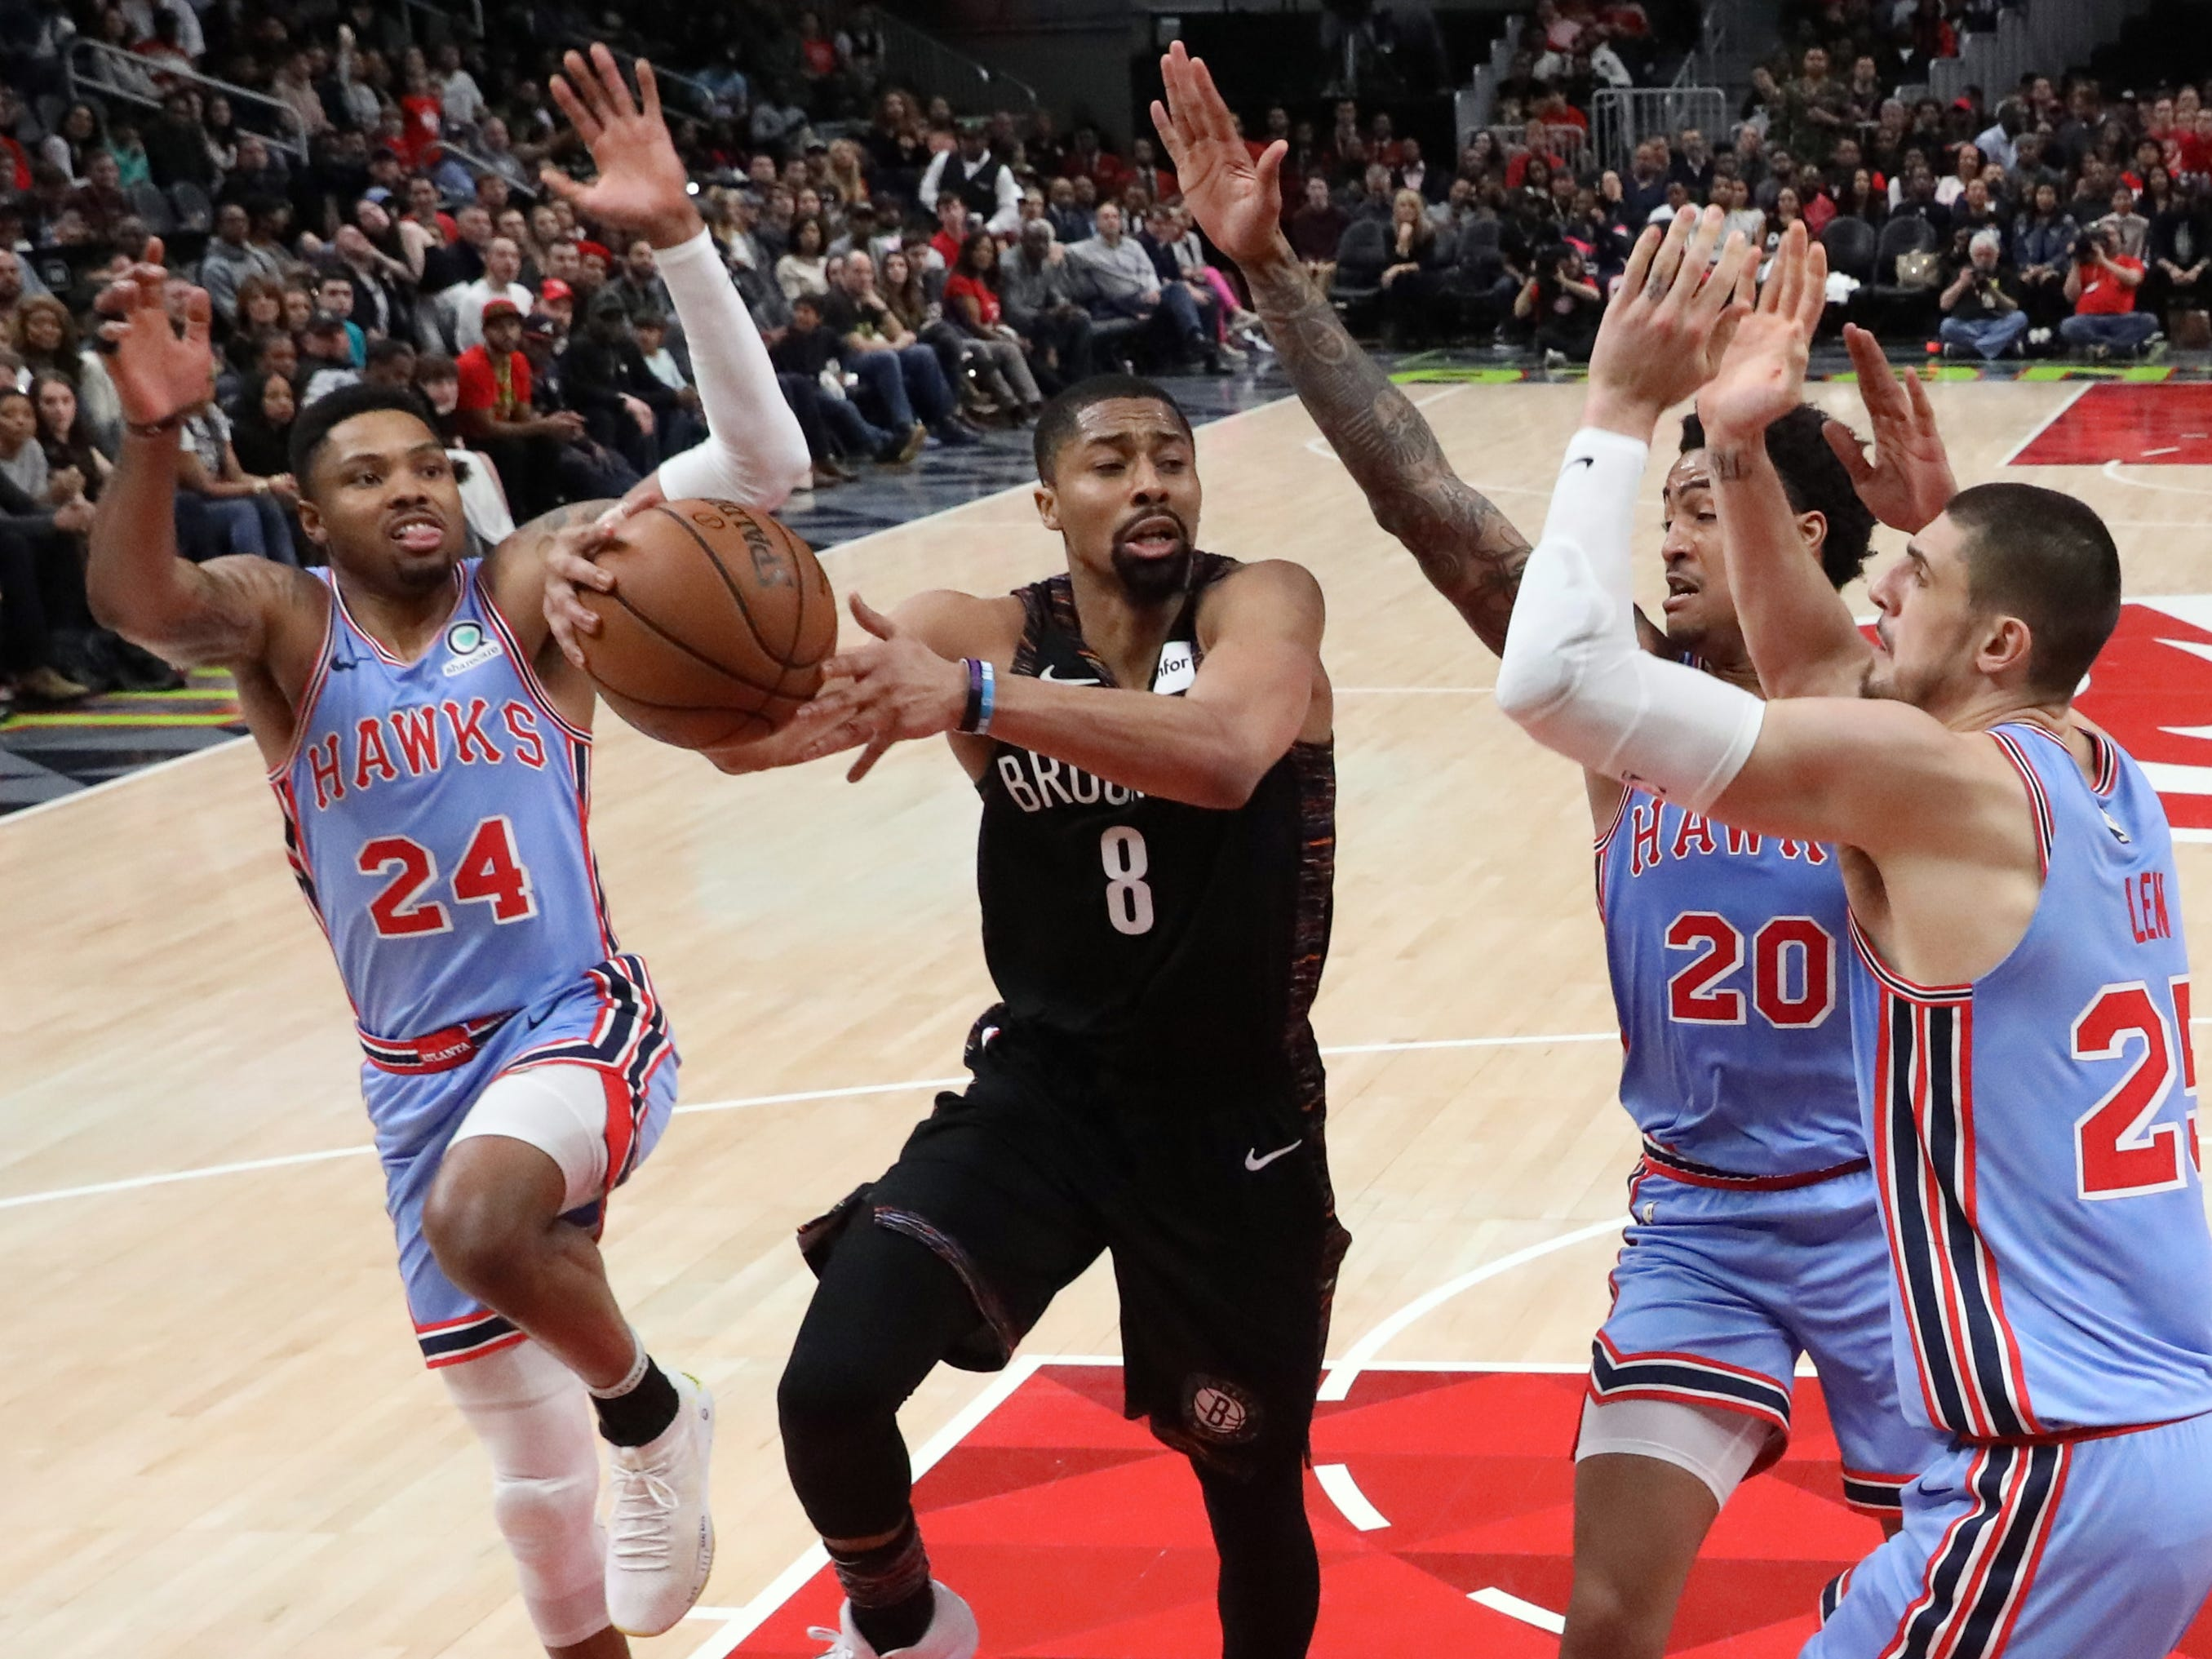 March 9: Nets guard Spencer Dinwiddie (8) looks to pass out of a triple-team by Hawks defenders Kent Bazemore (24), John Collins (20), and Alex Len (25) during the second half in Atlanta.